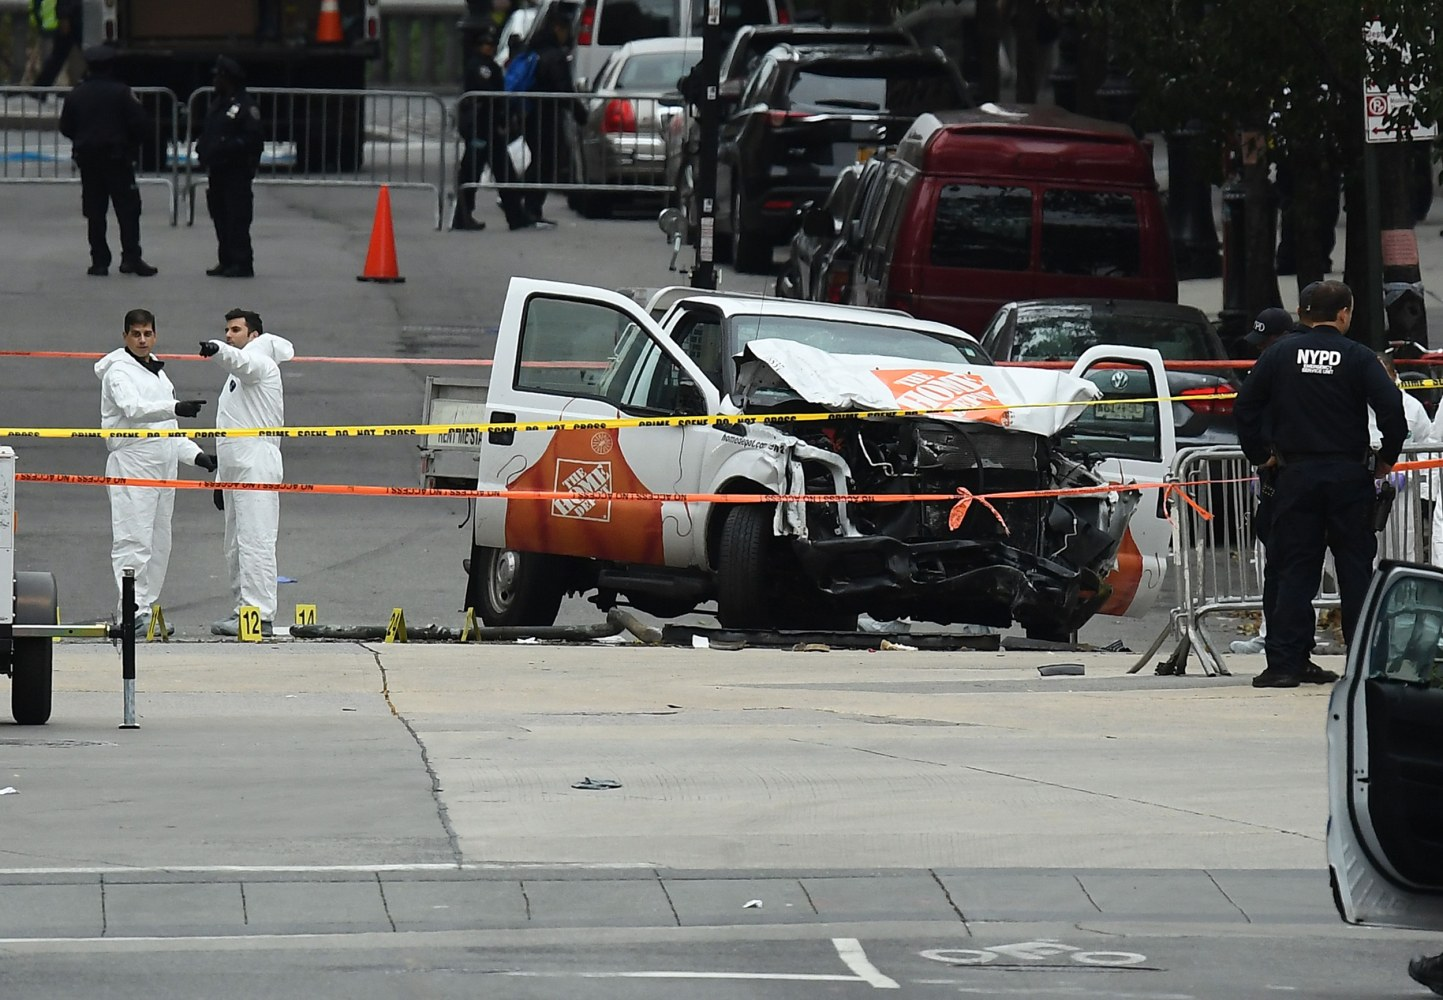 NY  truck attack: Trump backs Guantanamo for suspect